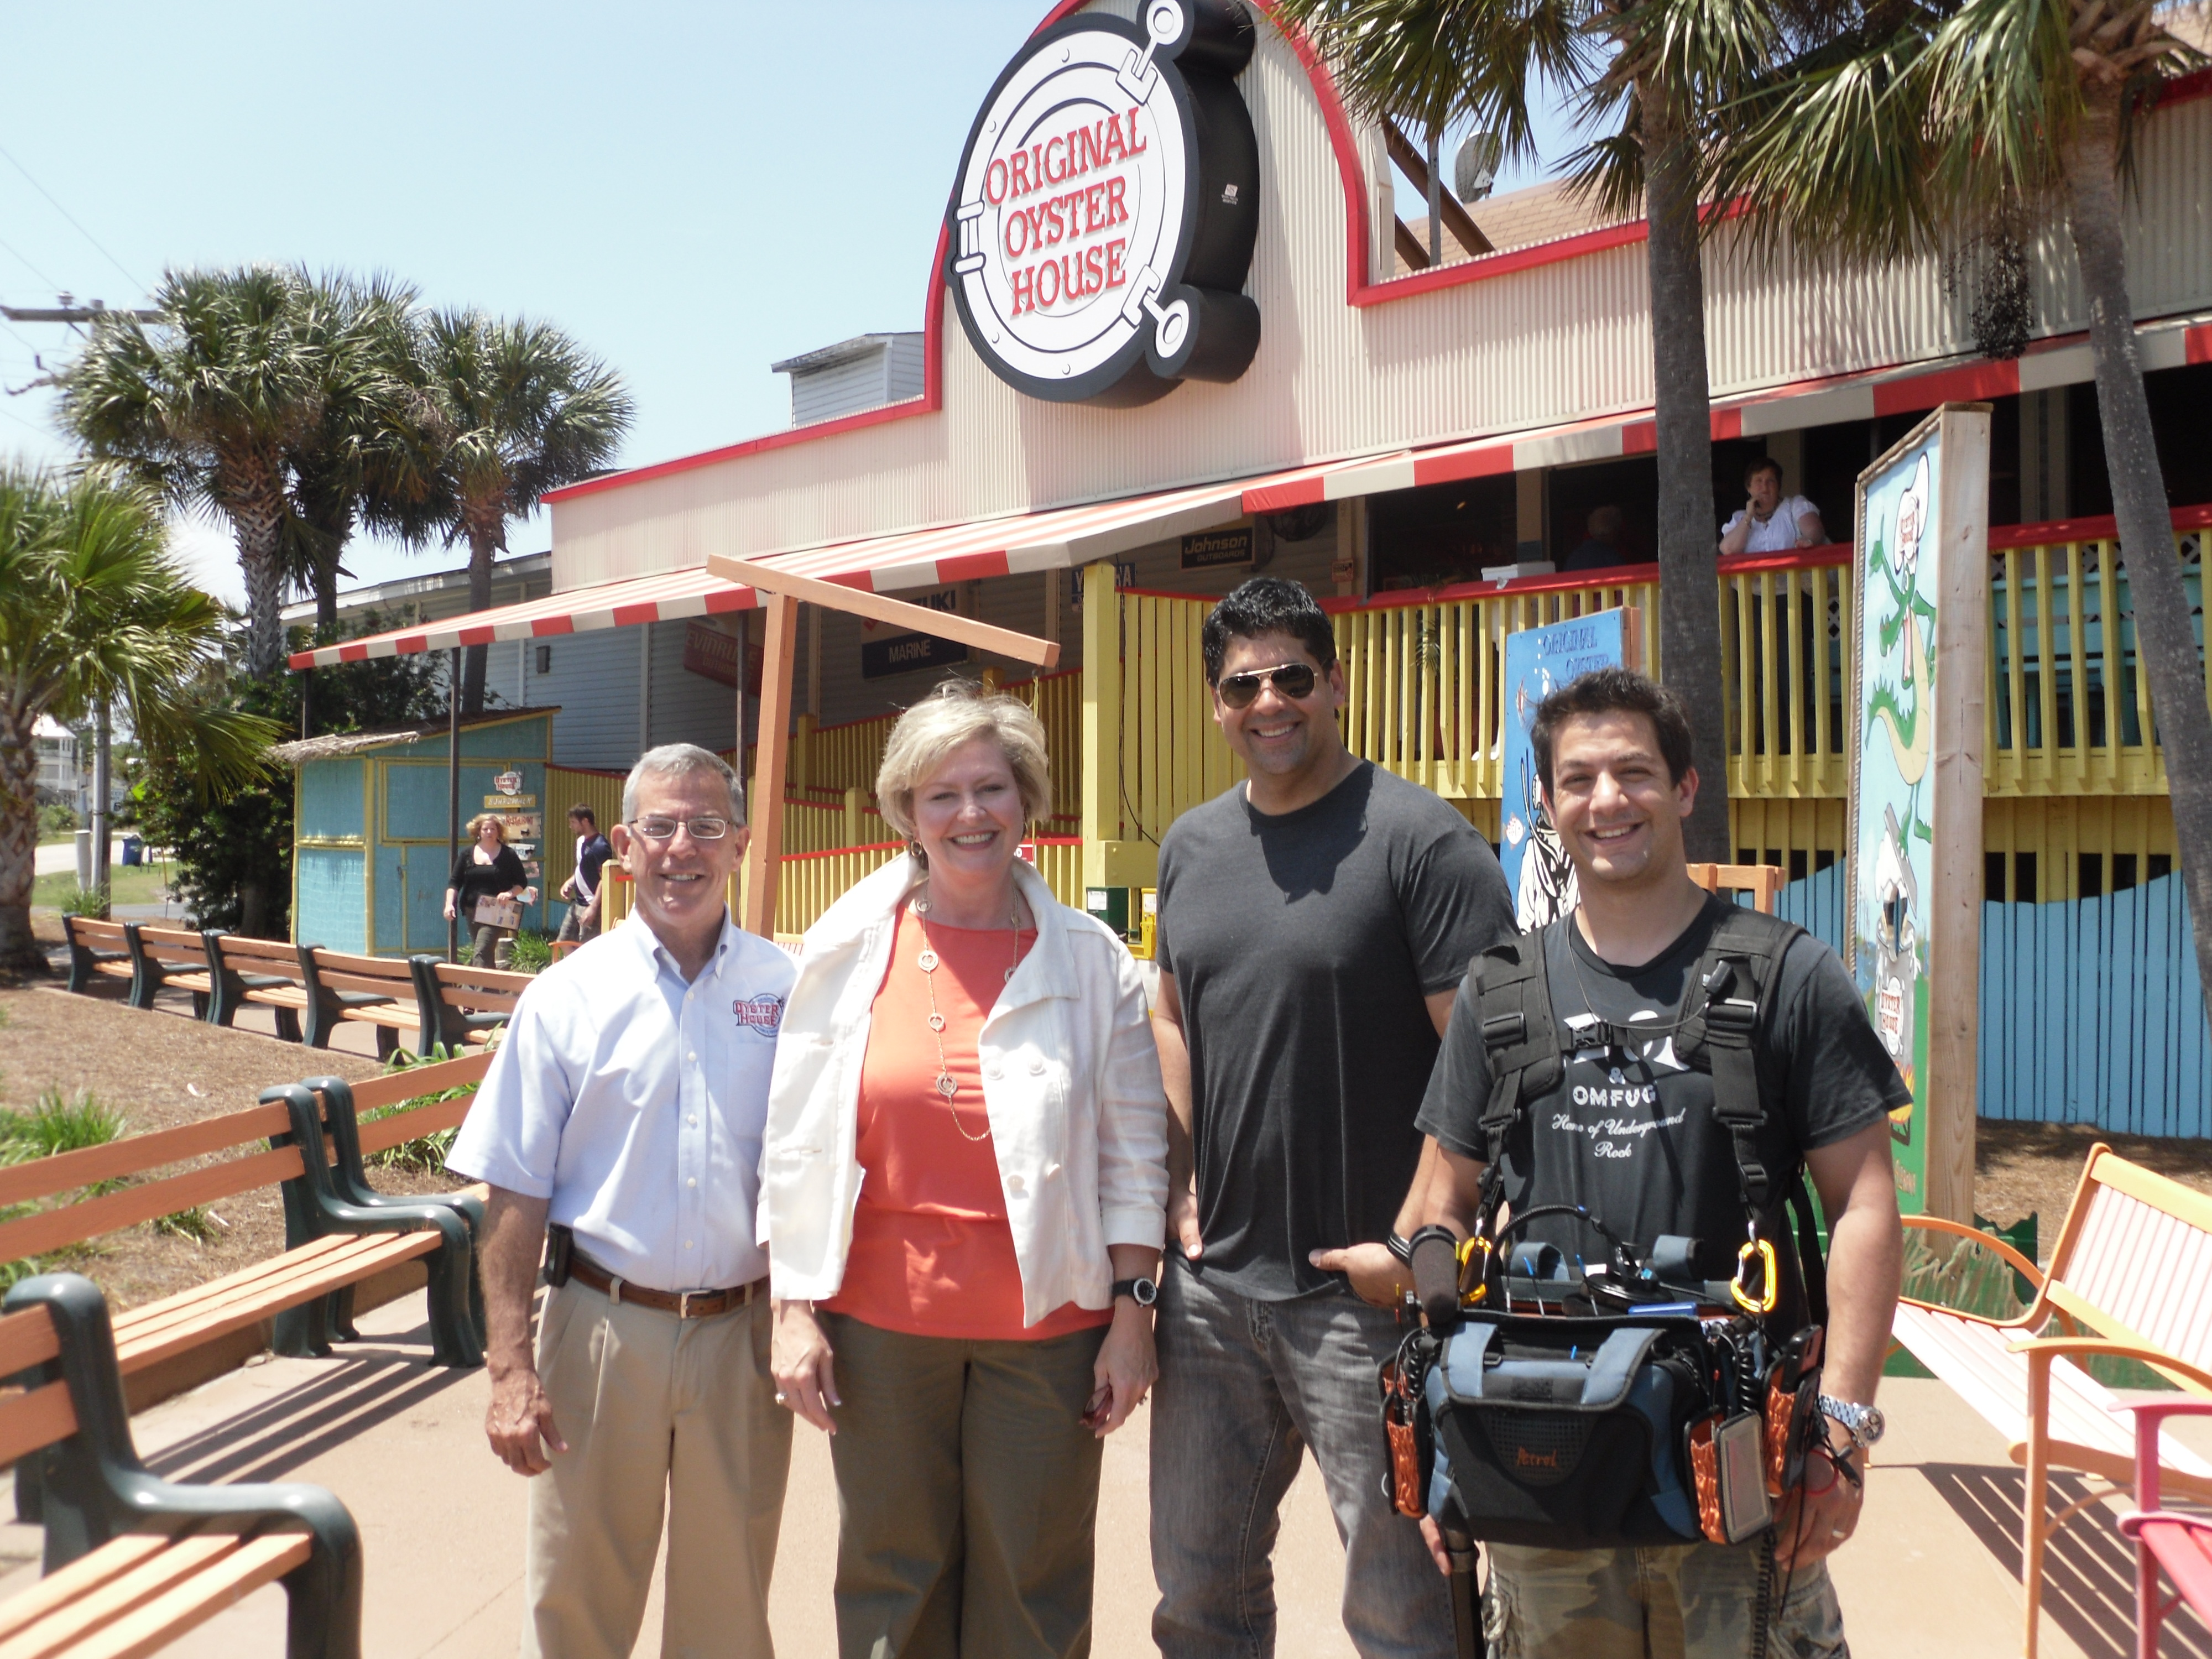 Man Vs Food crew outside of Original oyster house